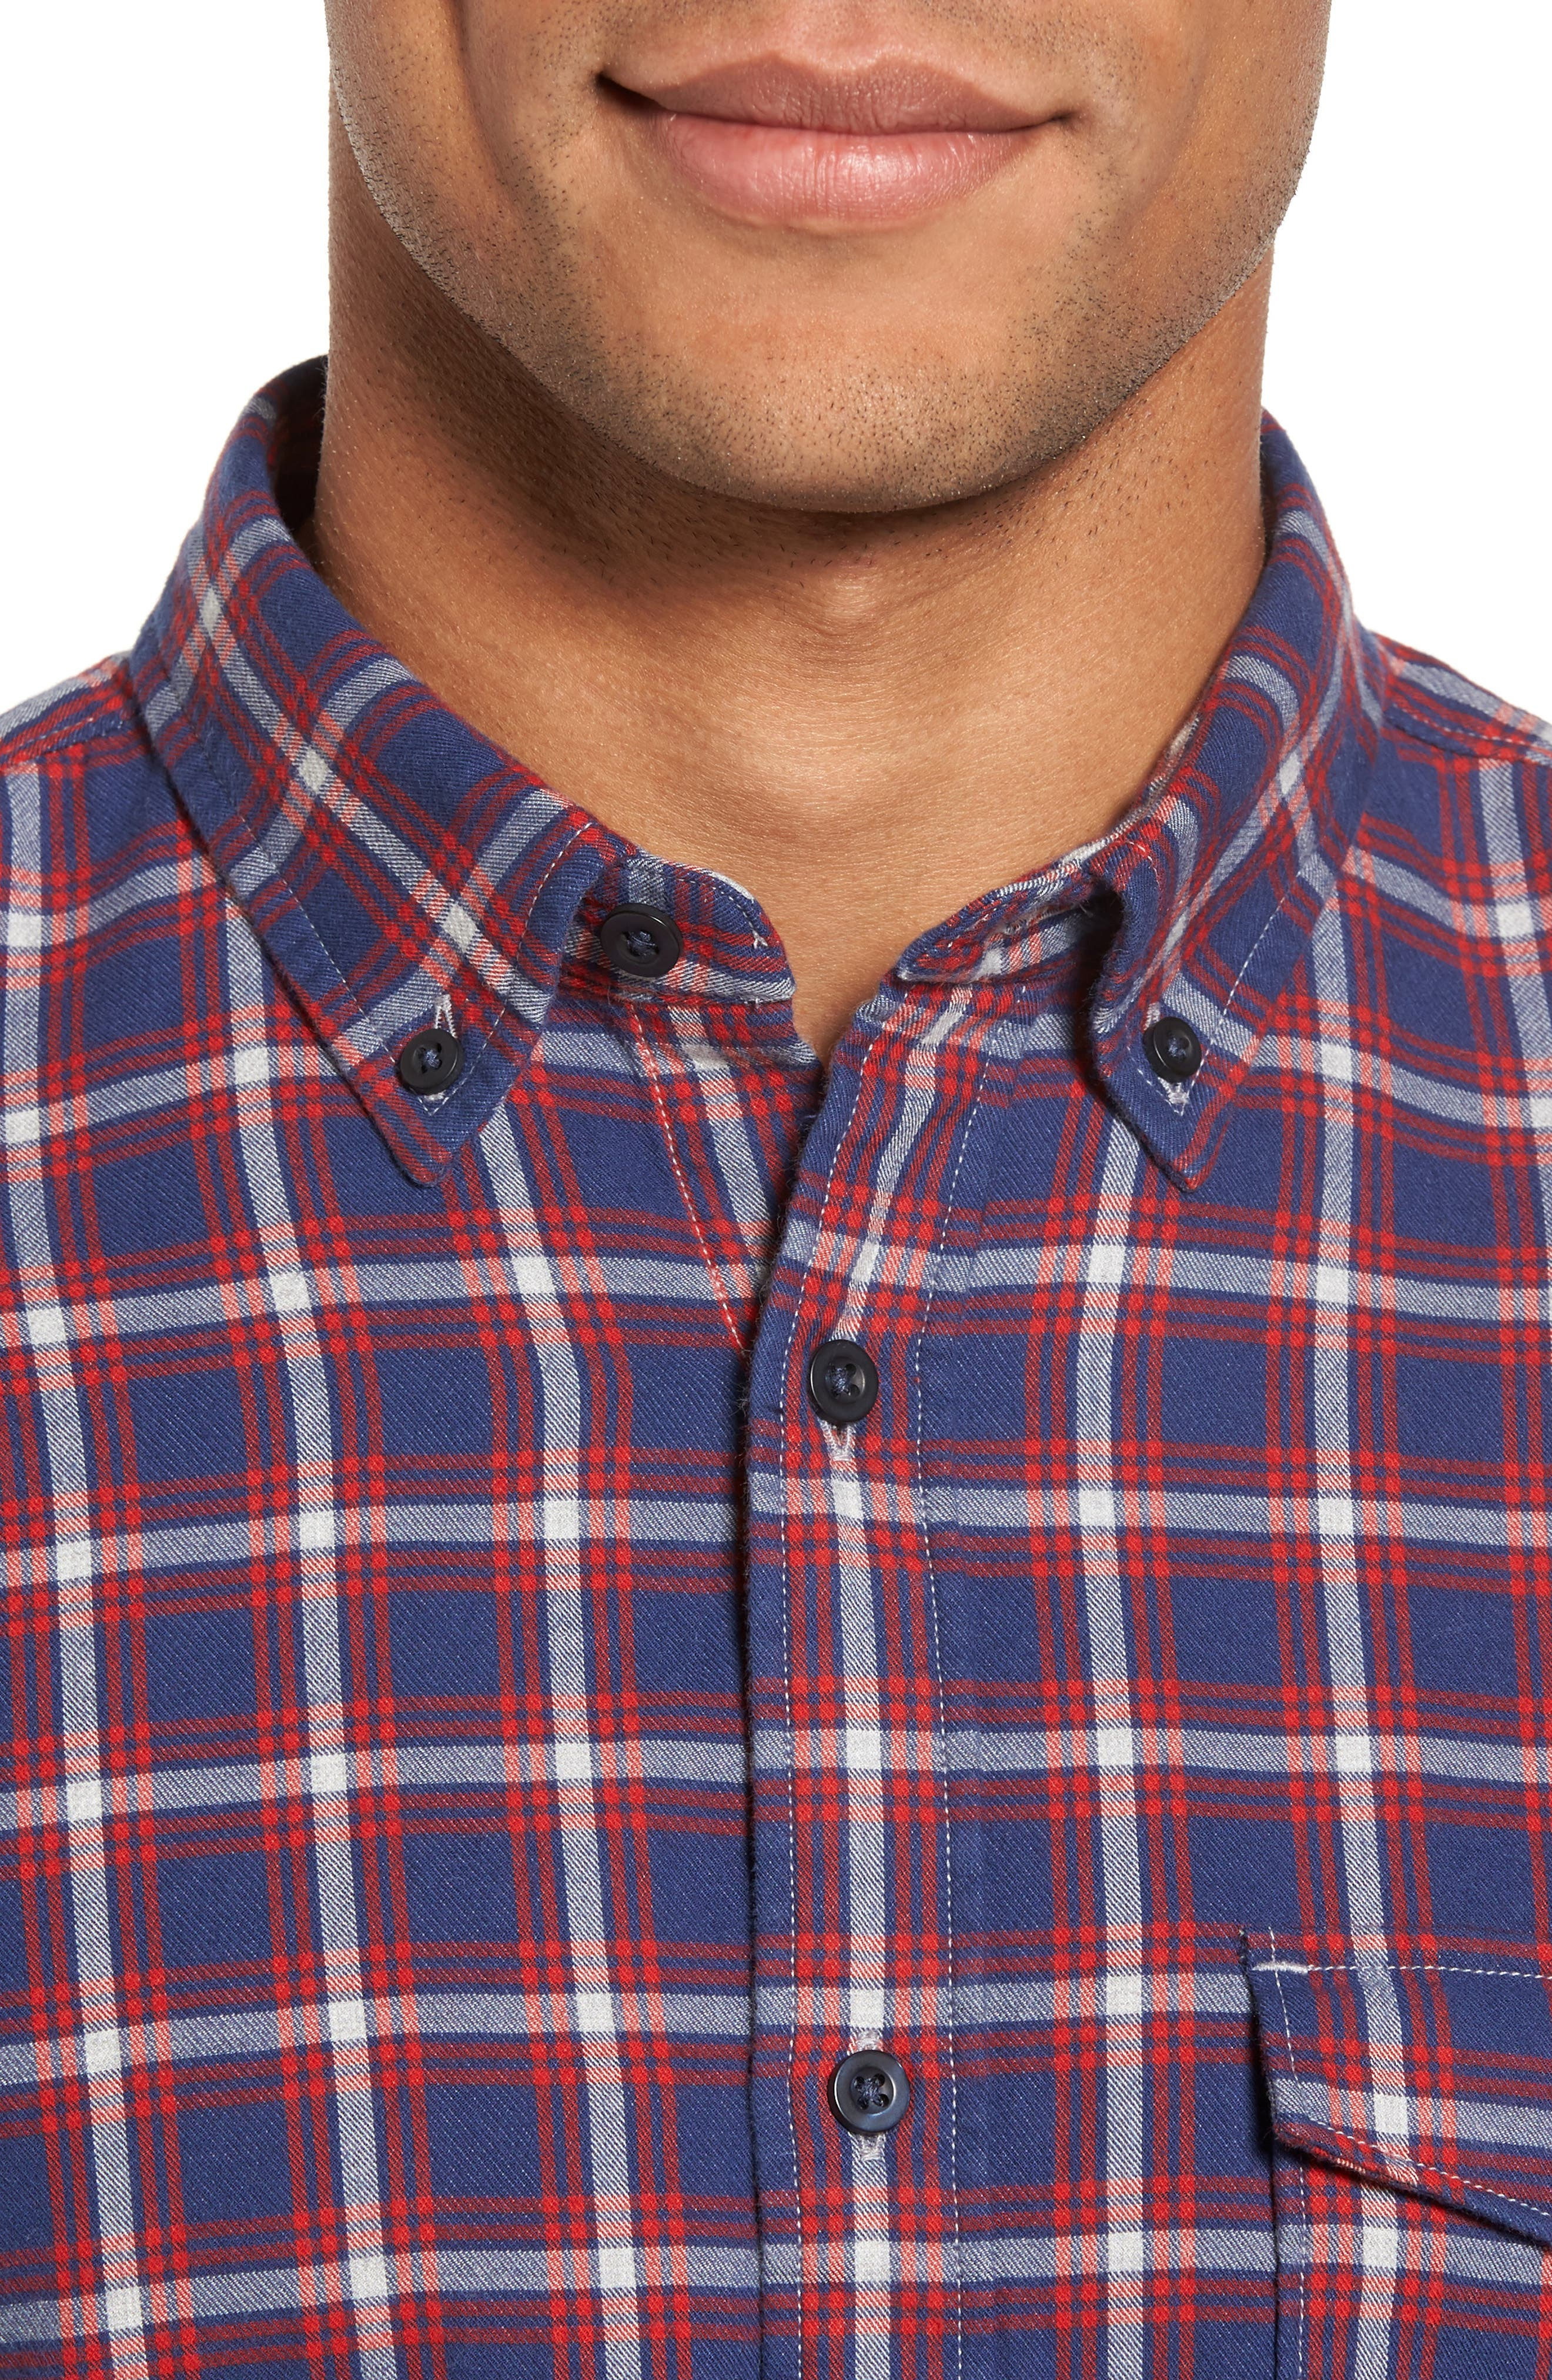 Trim Fit Duofold Check Sport Shirt,                             Alternate thumbnail 4, color,                             Navy Iris Red Plaid Duofold